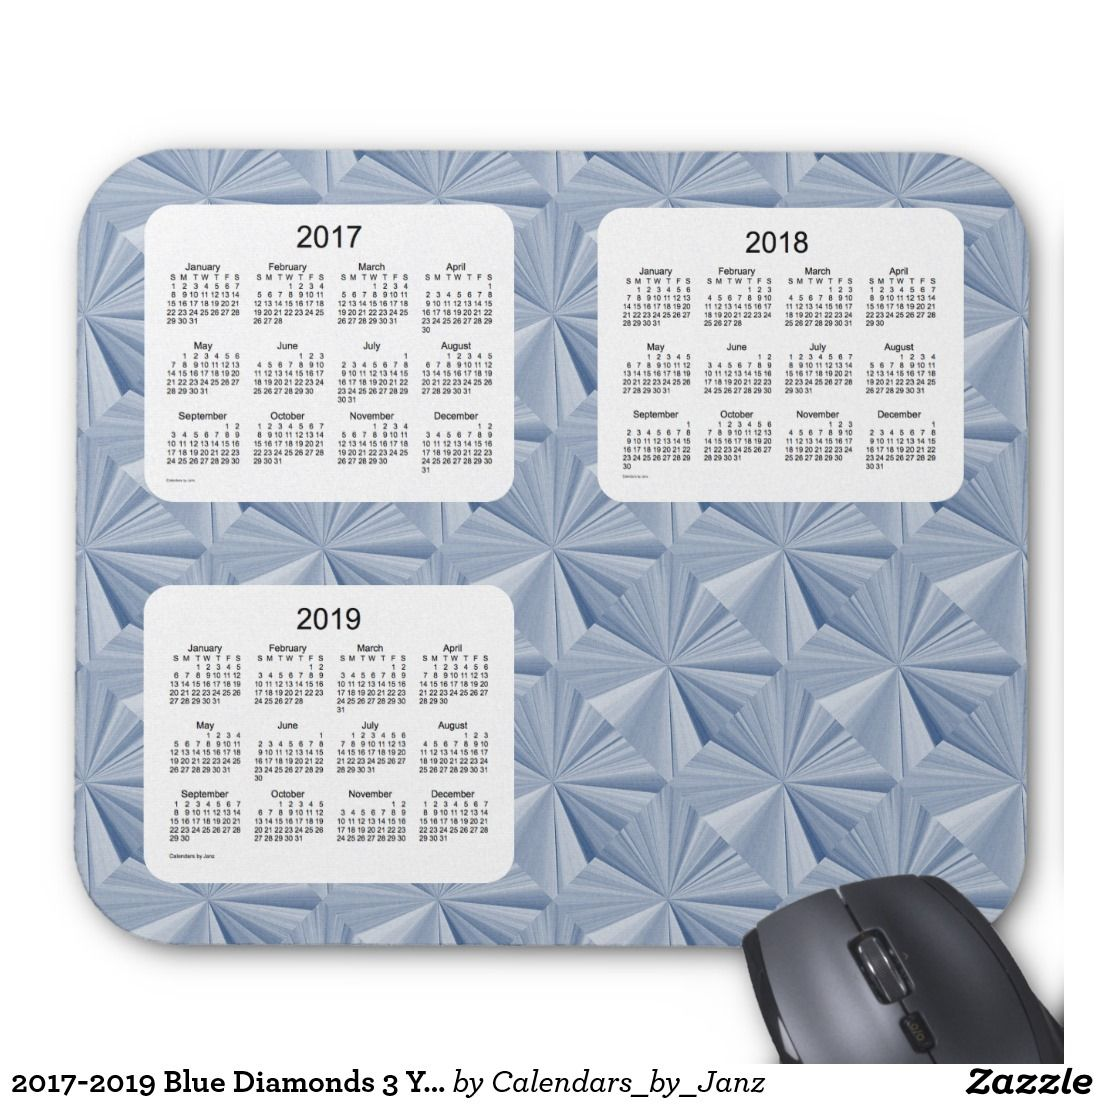 2017-2019 Blue Diamonds 3 Year Calendar by Janz Mouse Pad